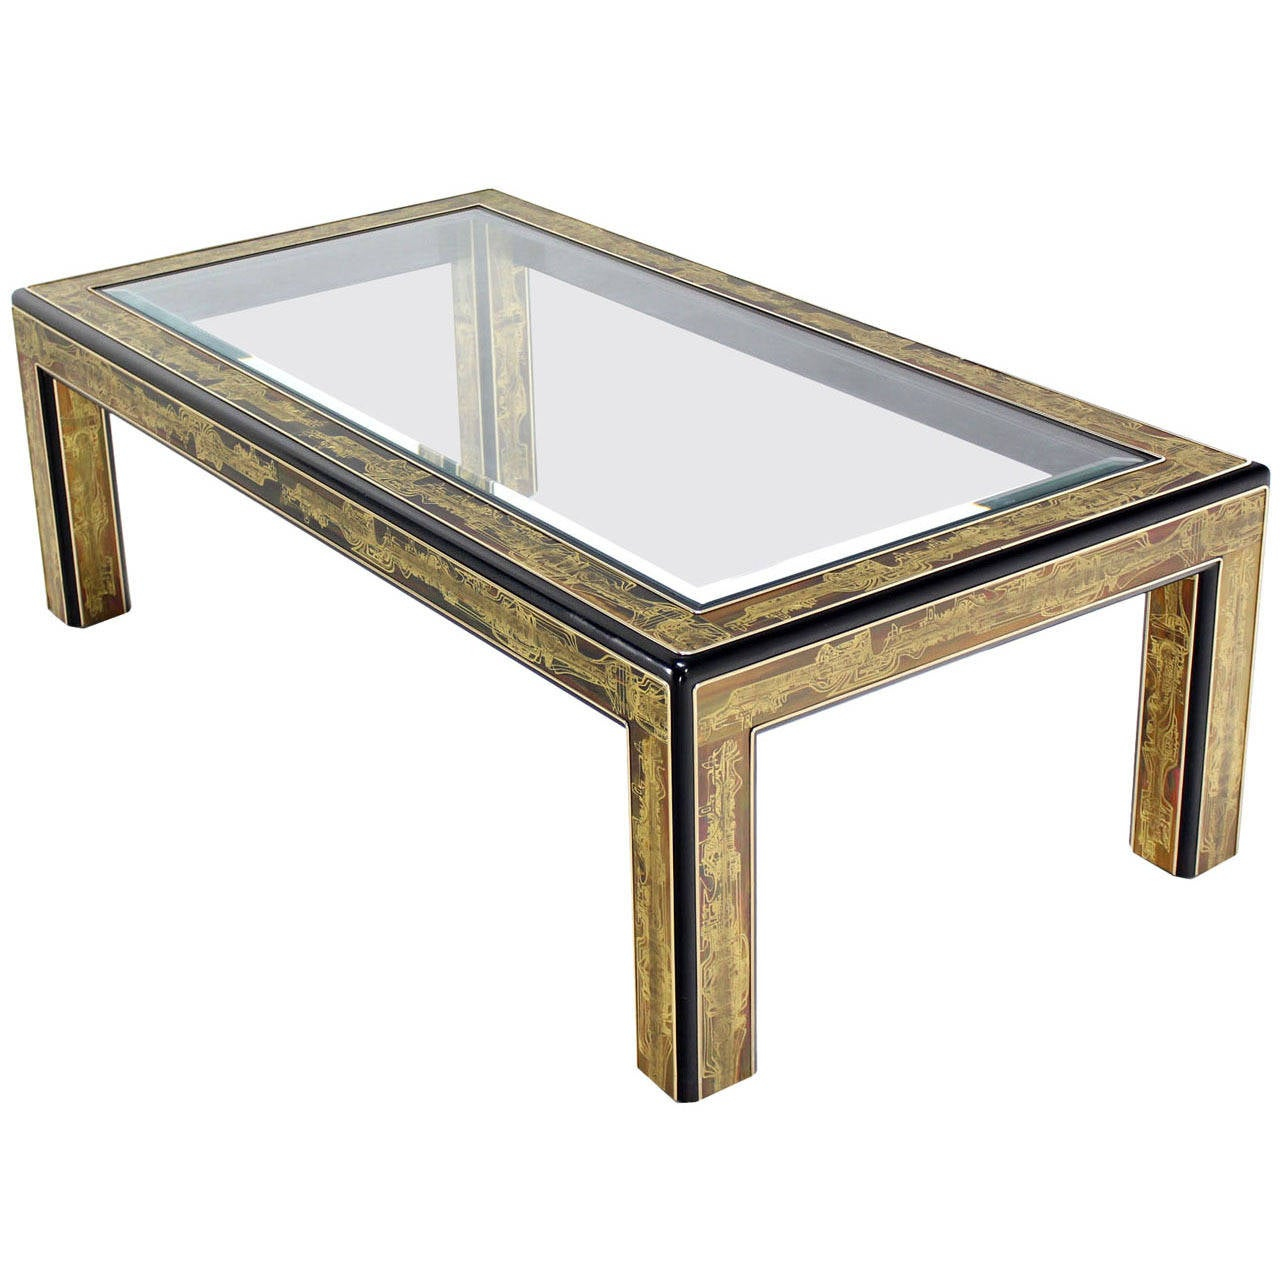 Rectangular glass top brass and wood base coffee table by mastercraft at 1stdibs Bases for coffee tables